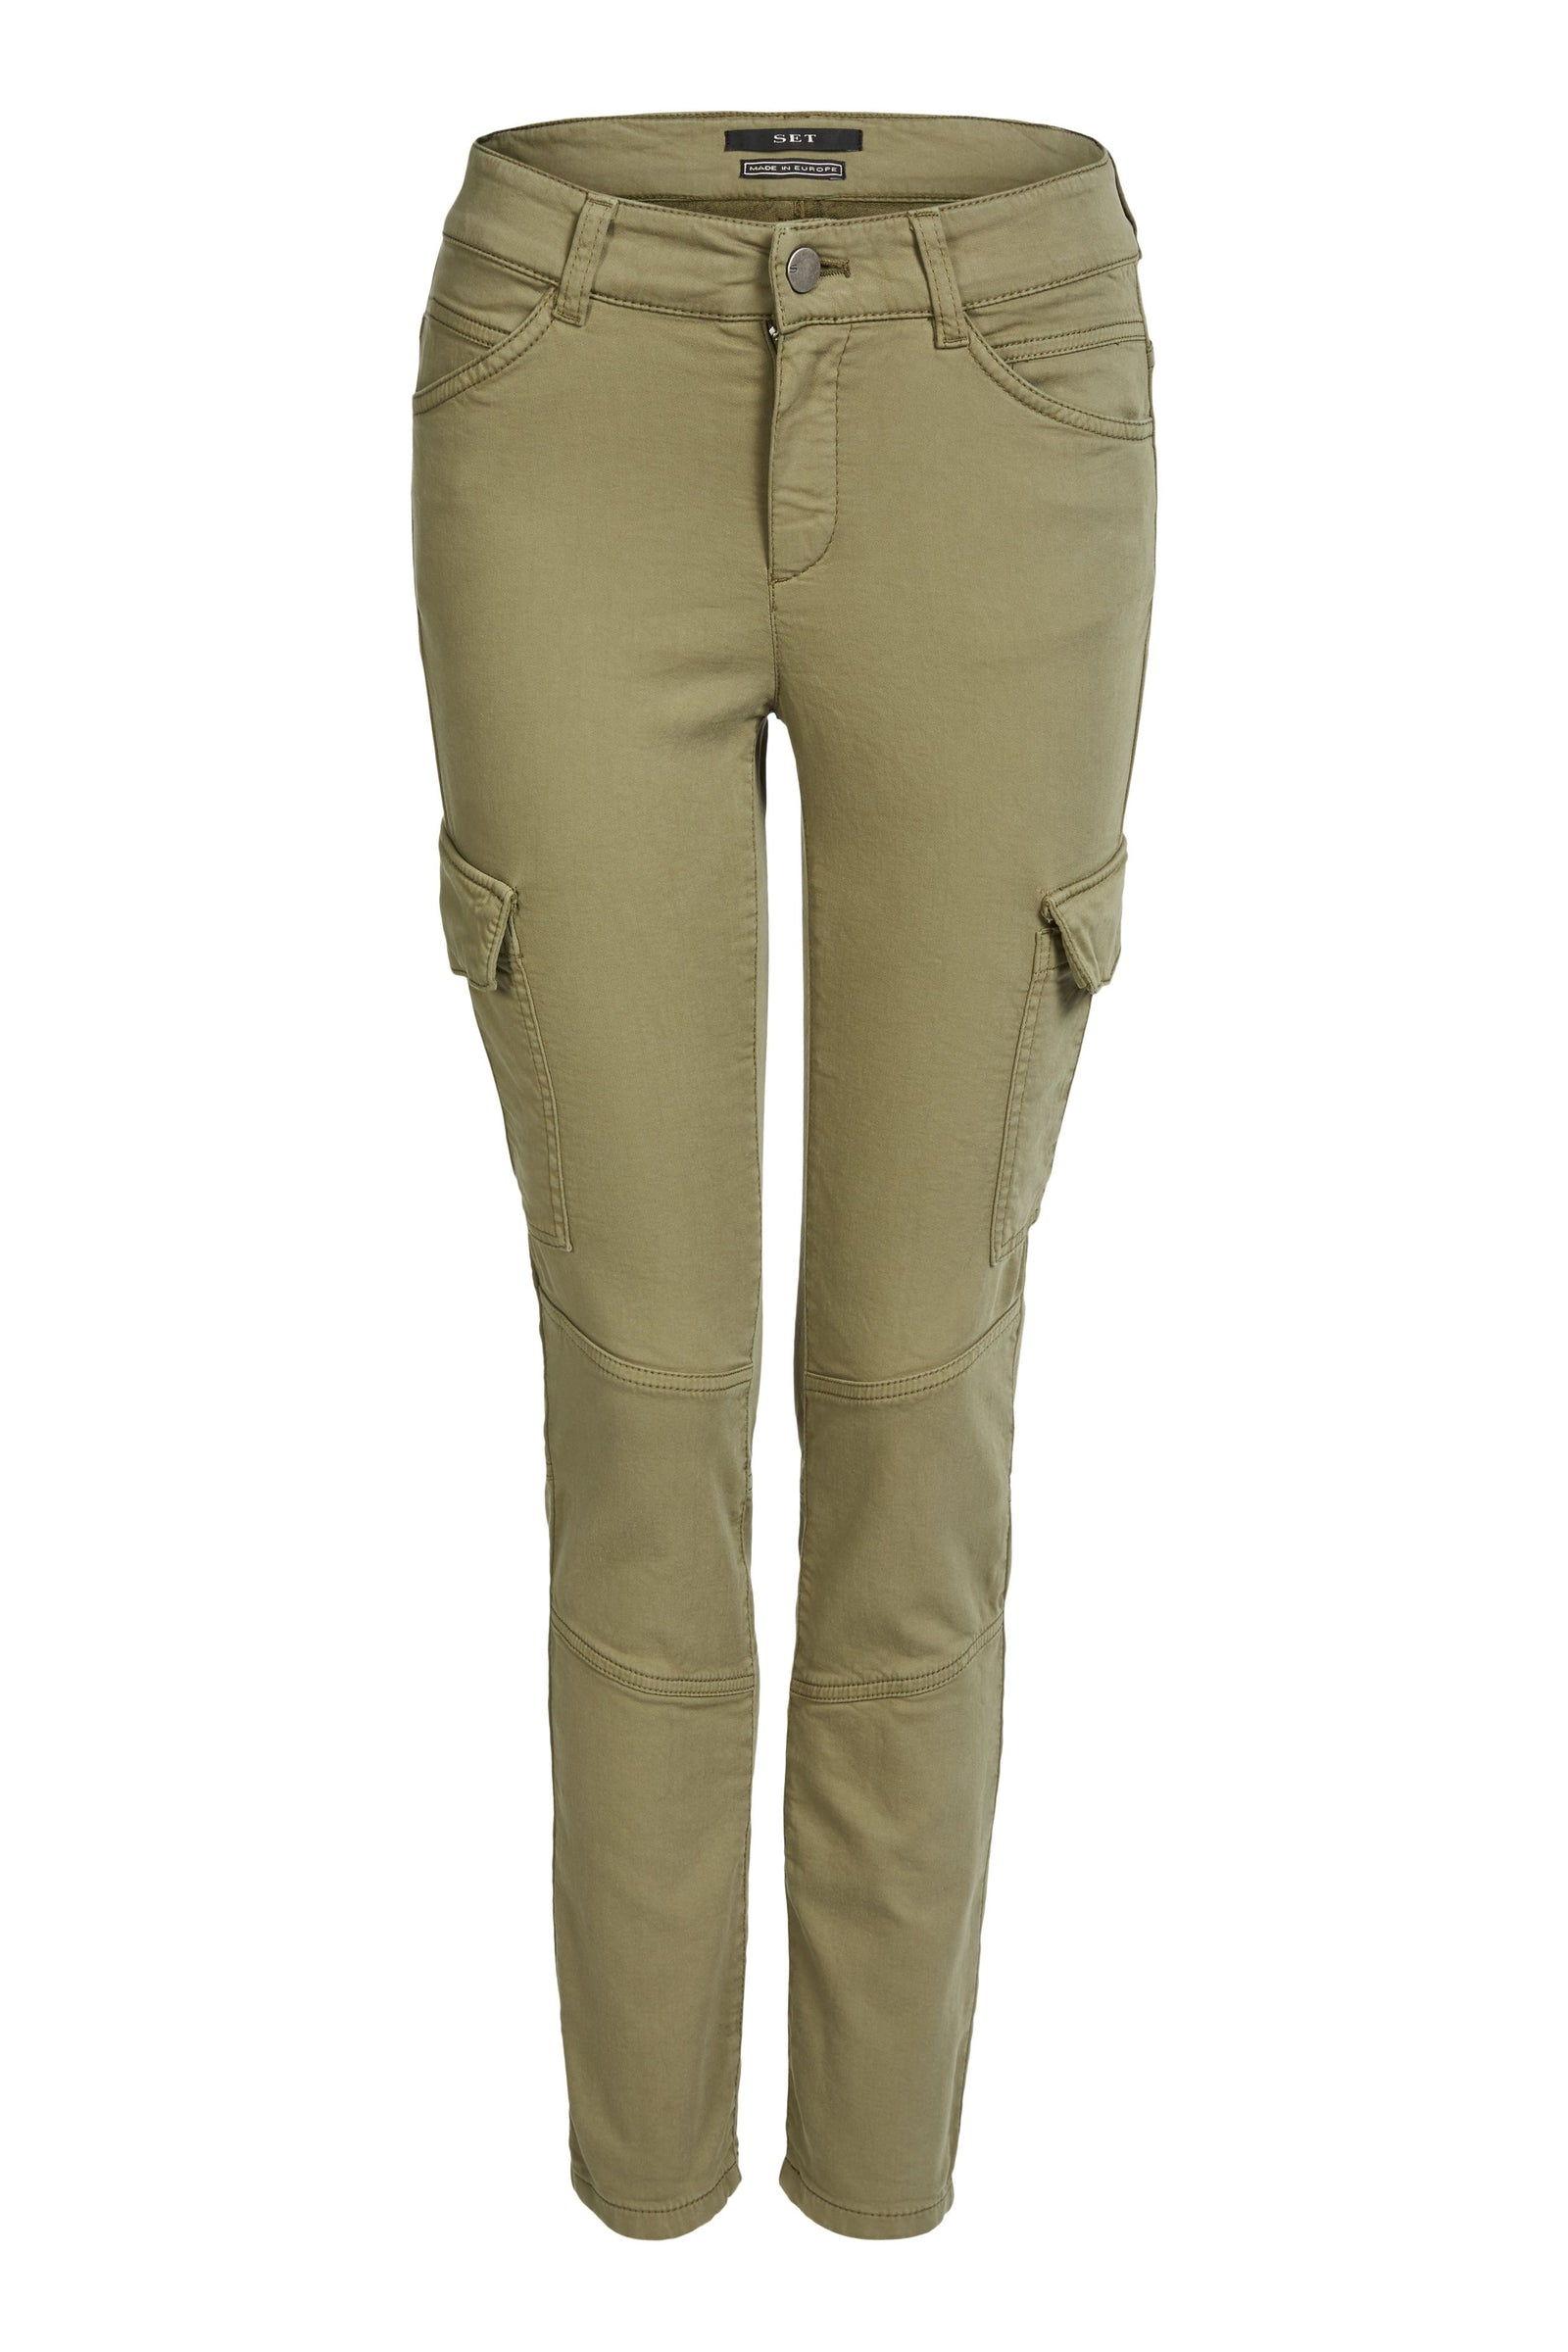 Set Slim Fit Green Cargo Trousers